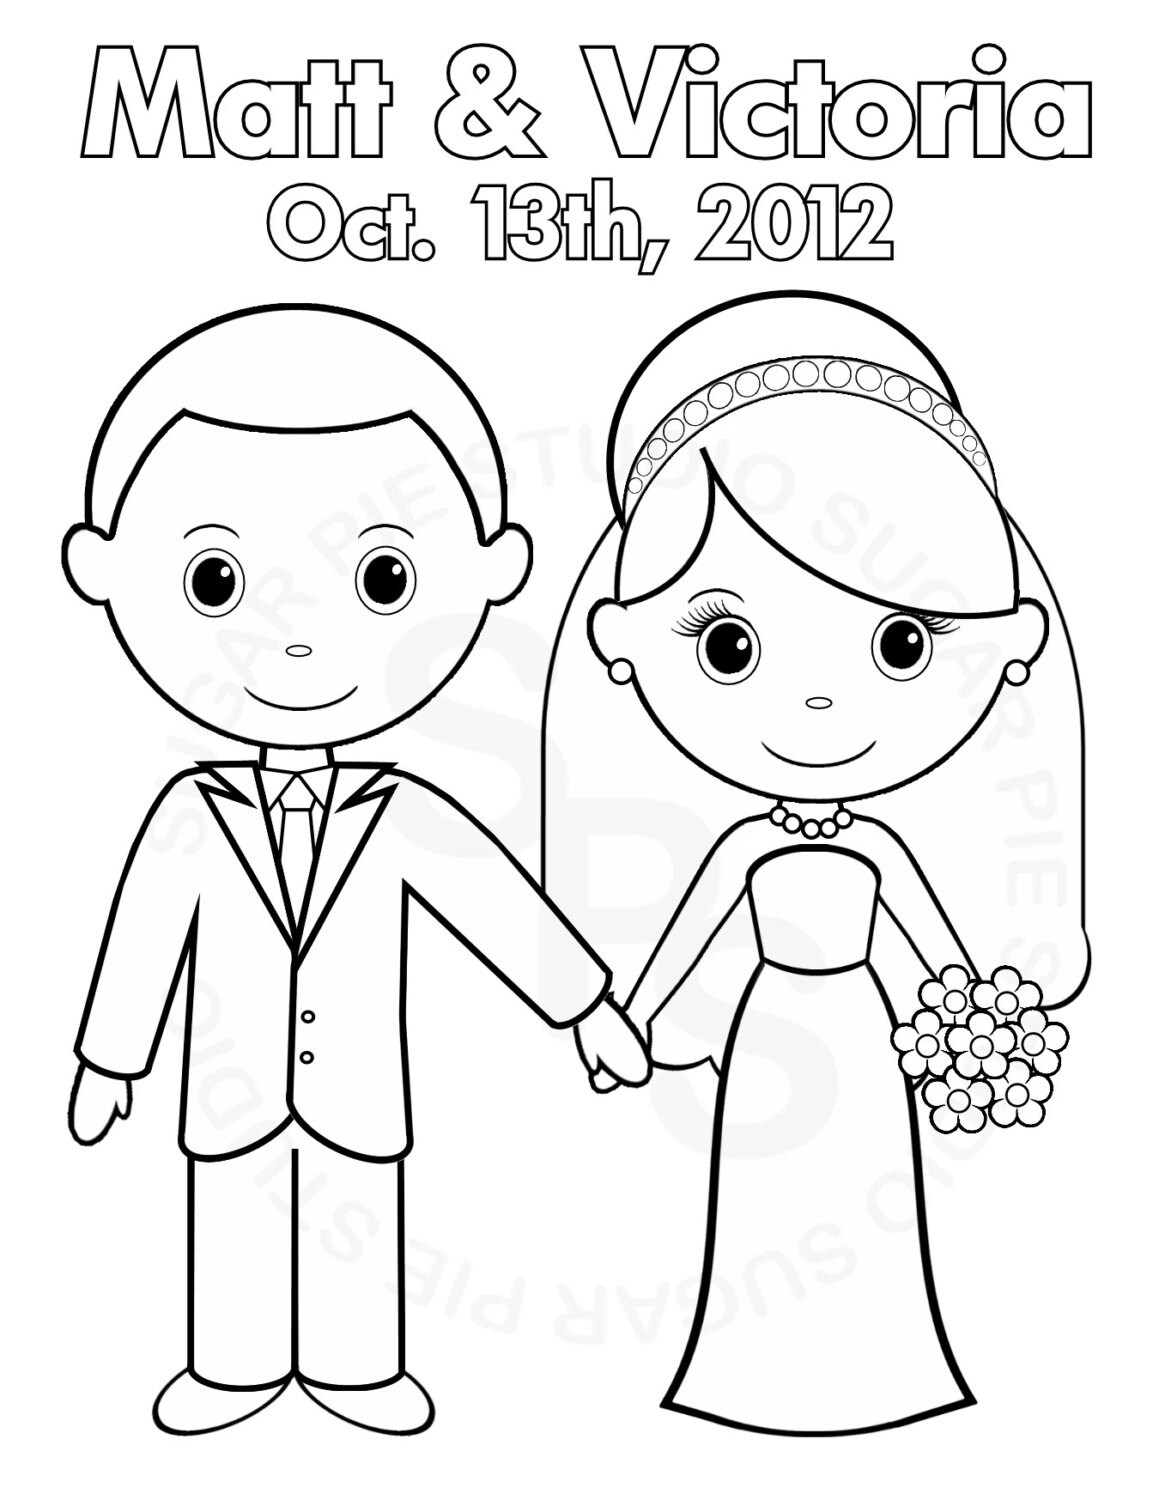 bride and groom cartoon coloring pages coloring pages Wedding Coloring Pages  Bride And Groom Coloring Pictures